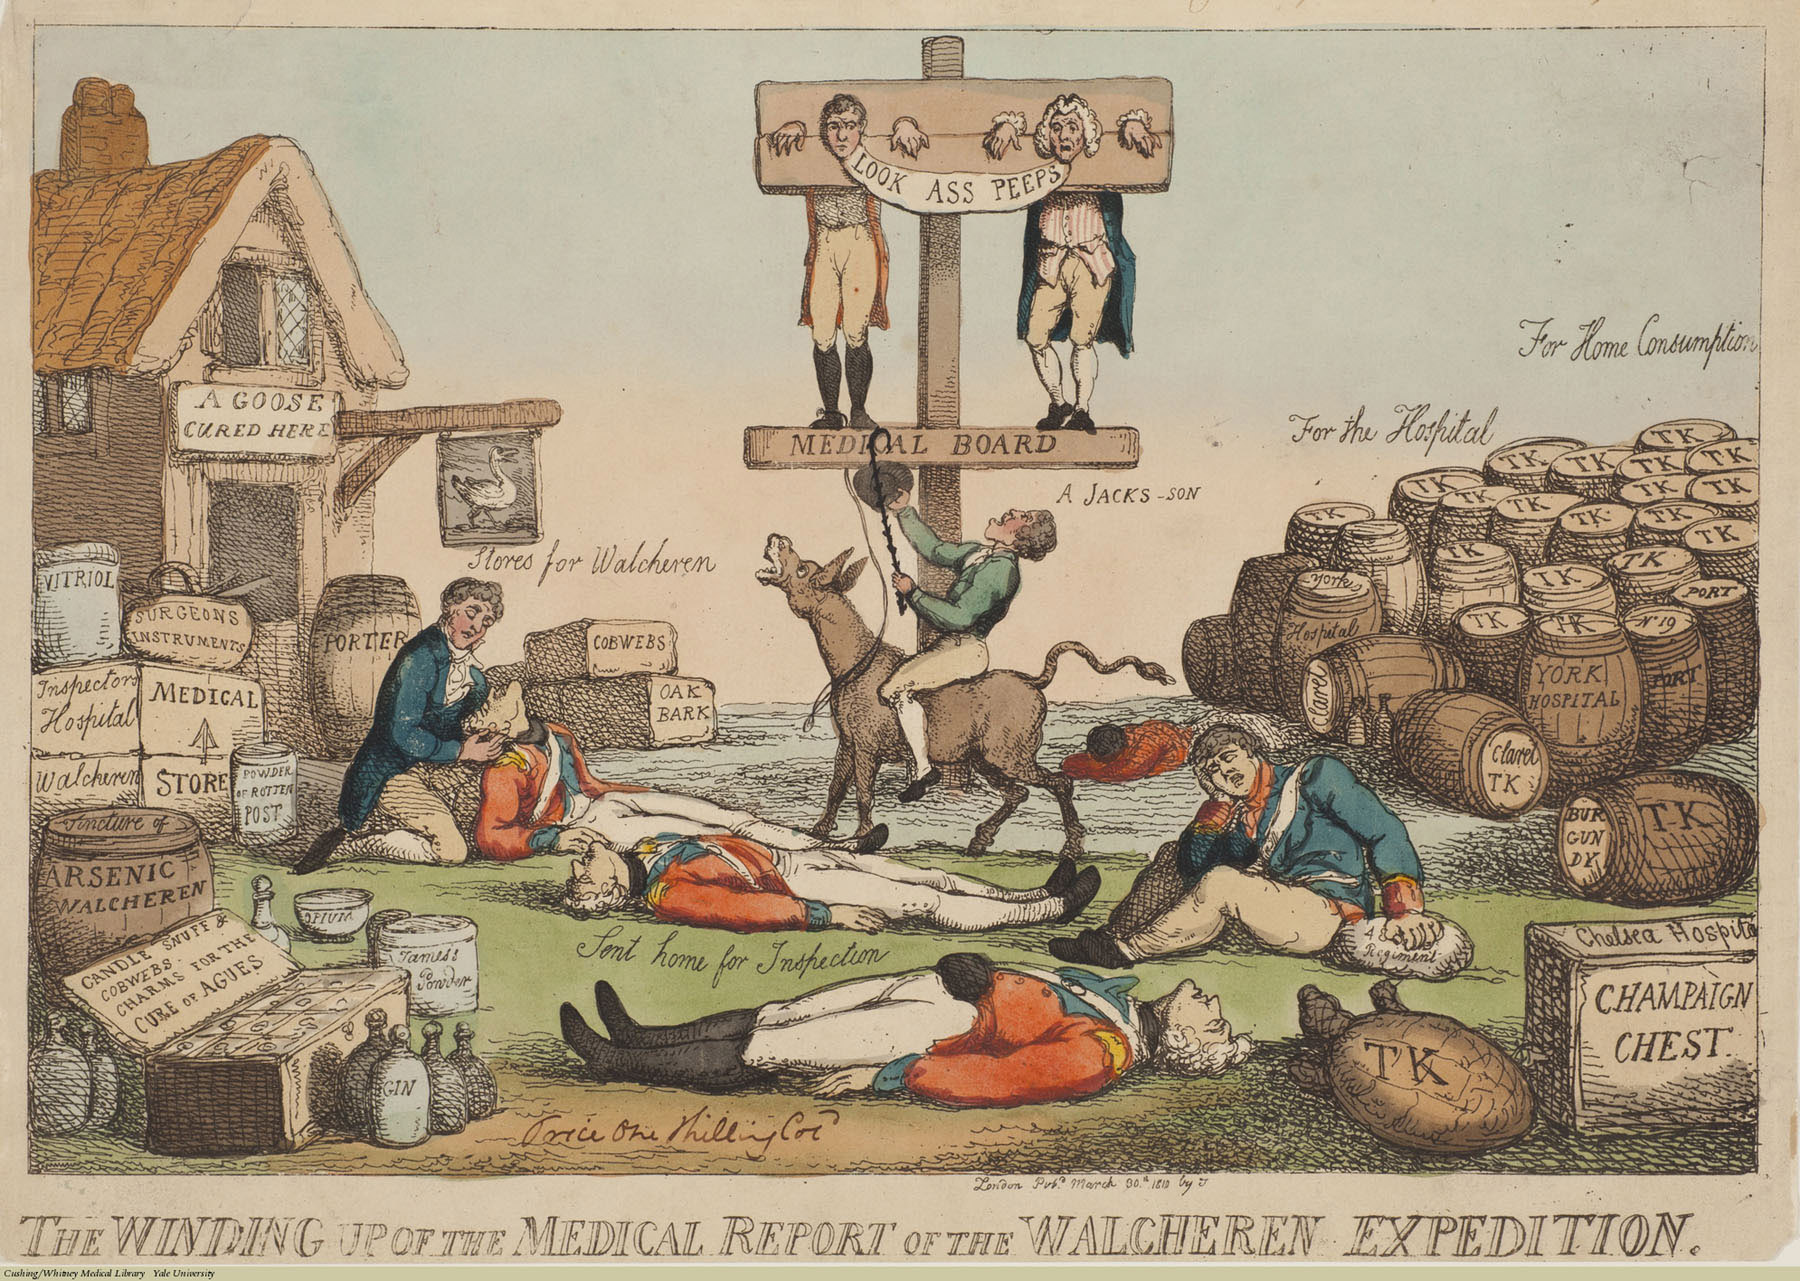 The Winding Up of the Medical Report of the Walcheren Expedition. Thomas Rowlandson, Etching coloured, 1810. Subject: Lucas Pepys (1742-1830), Robert Jackson (1750-1827), Thomas Keate (1745-1821), Dr. James' Fever Powder, Chelsea Hospital, Walcheren Campaign, Military Medicine, Medical Boards, Drugs.